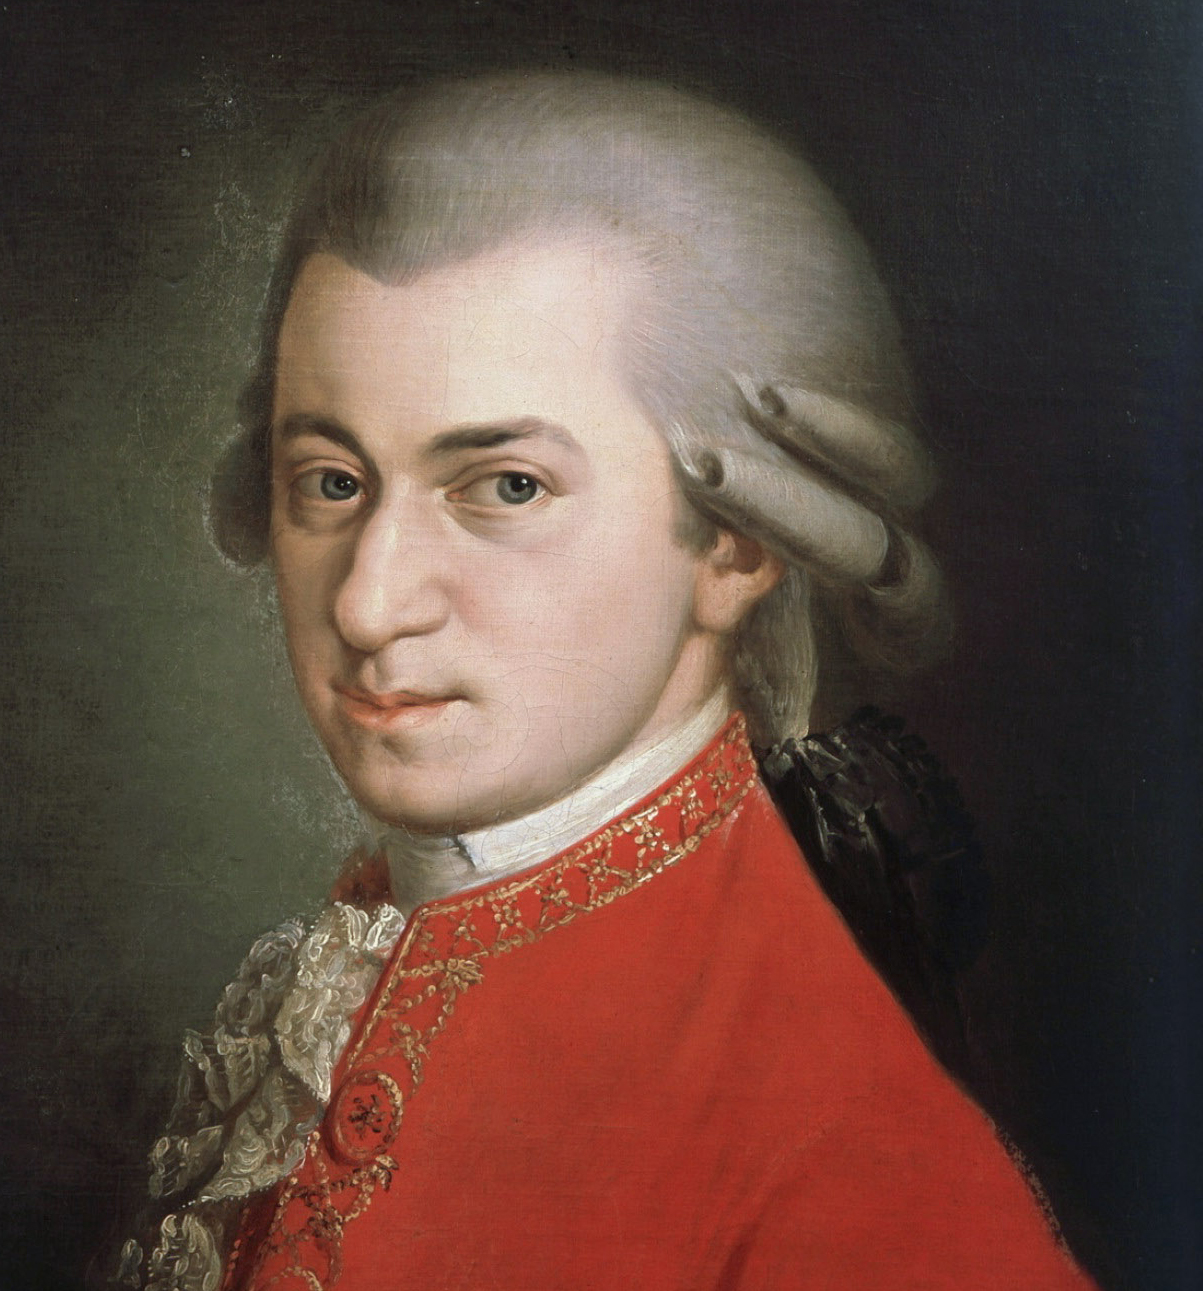 wolfgang amadeus mozart essays Biography term papers (paper 299) on wolfgang amadeus mozart: wolfgang amadeus mozart was a remarkable musician and composer mozart.